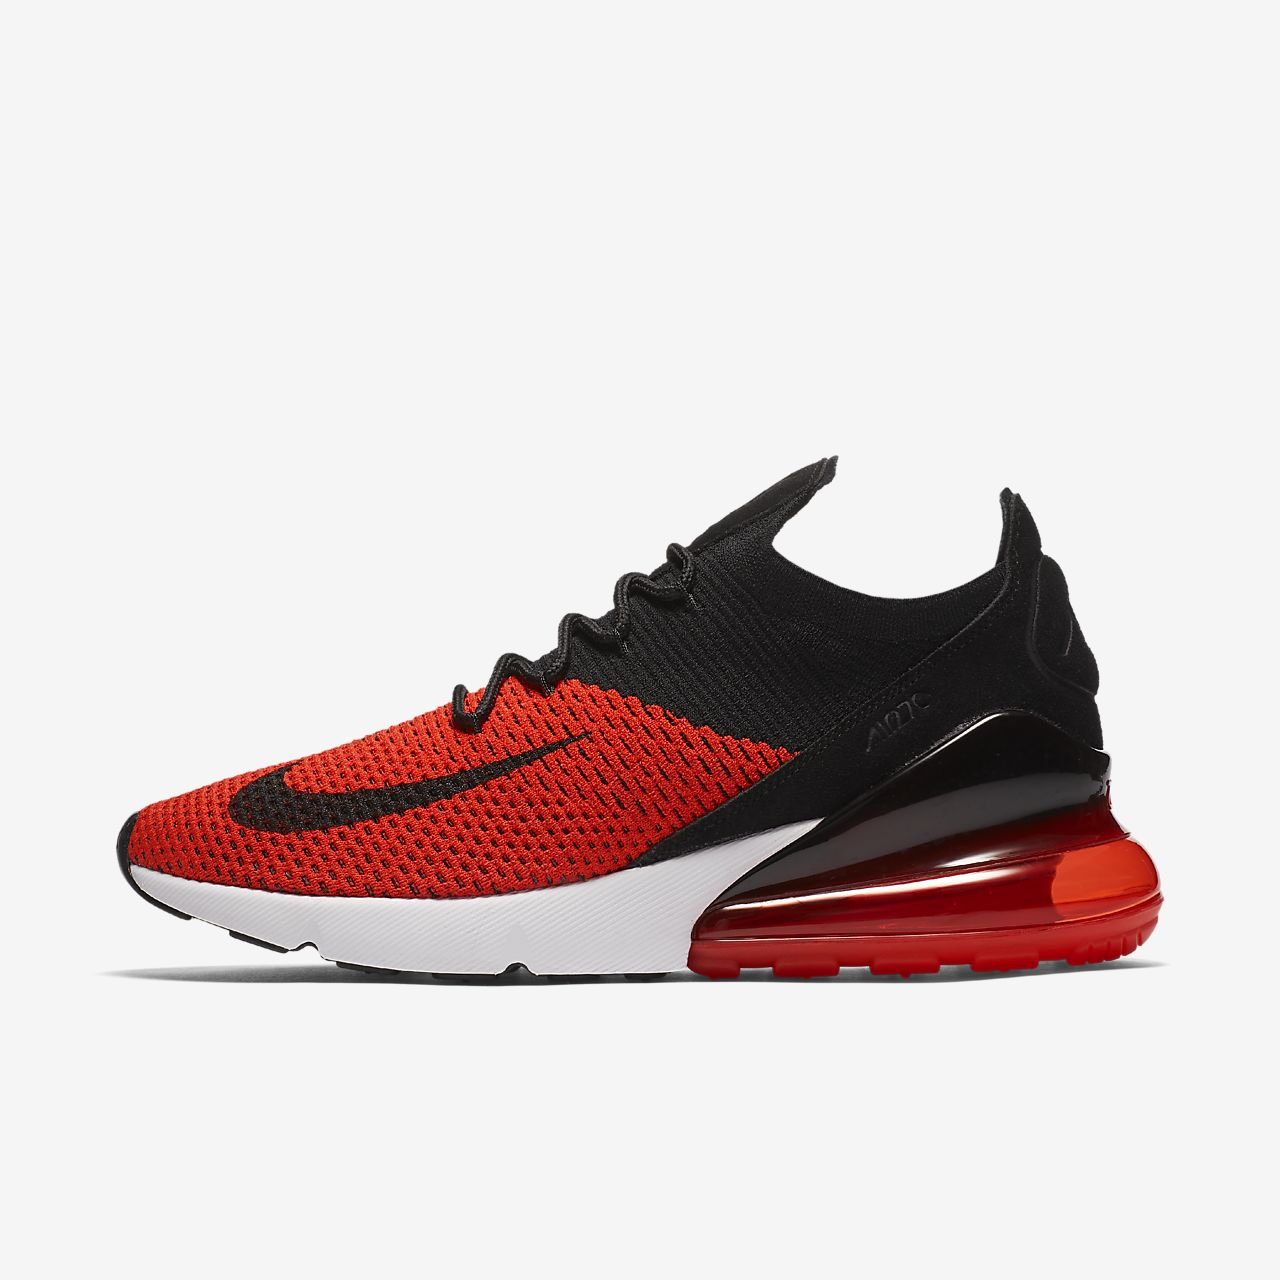 889b3d795371 Nike Air Max 270 Flyknit Men s Shoe. Nike.com